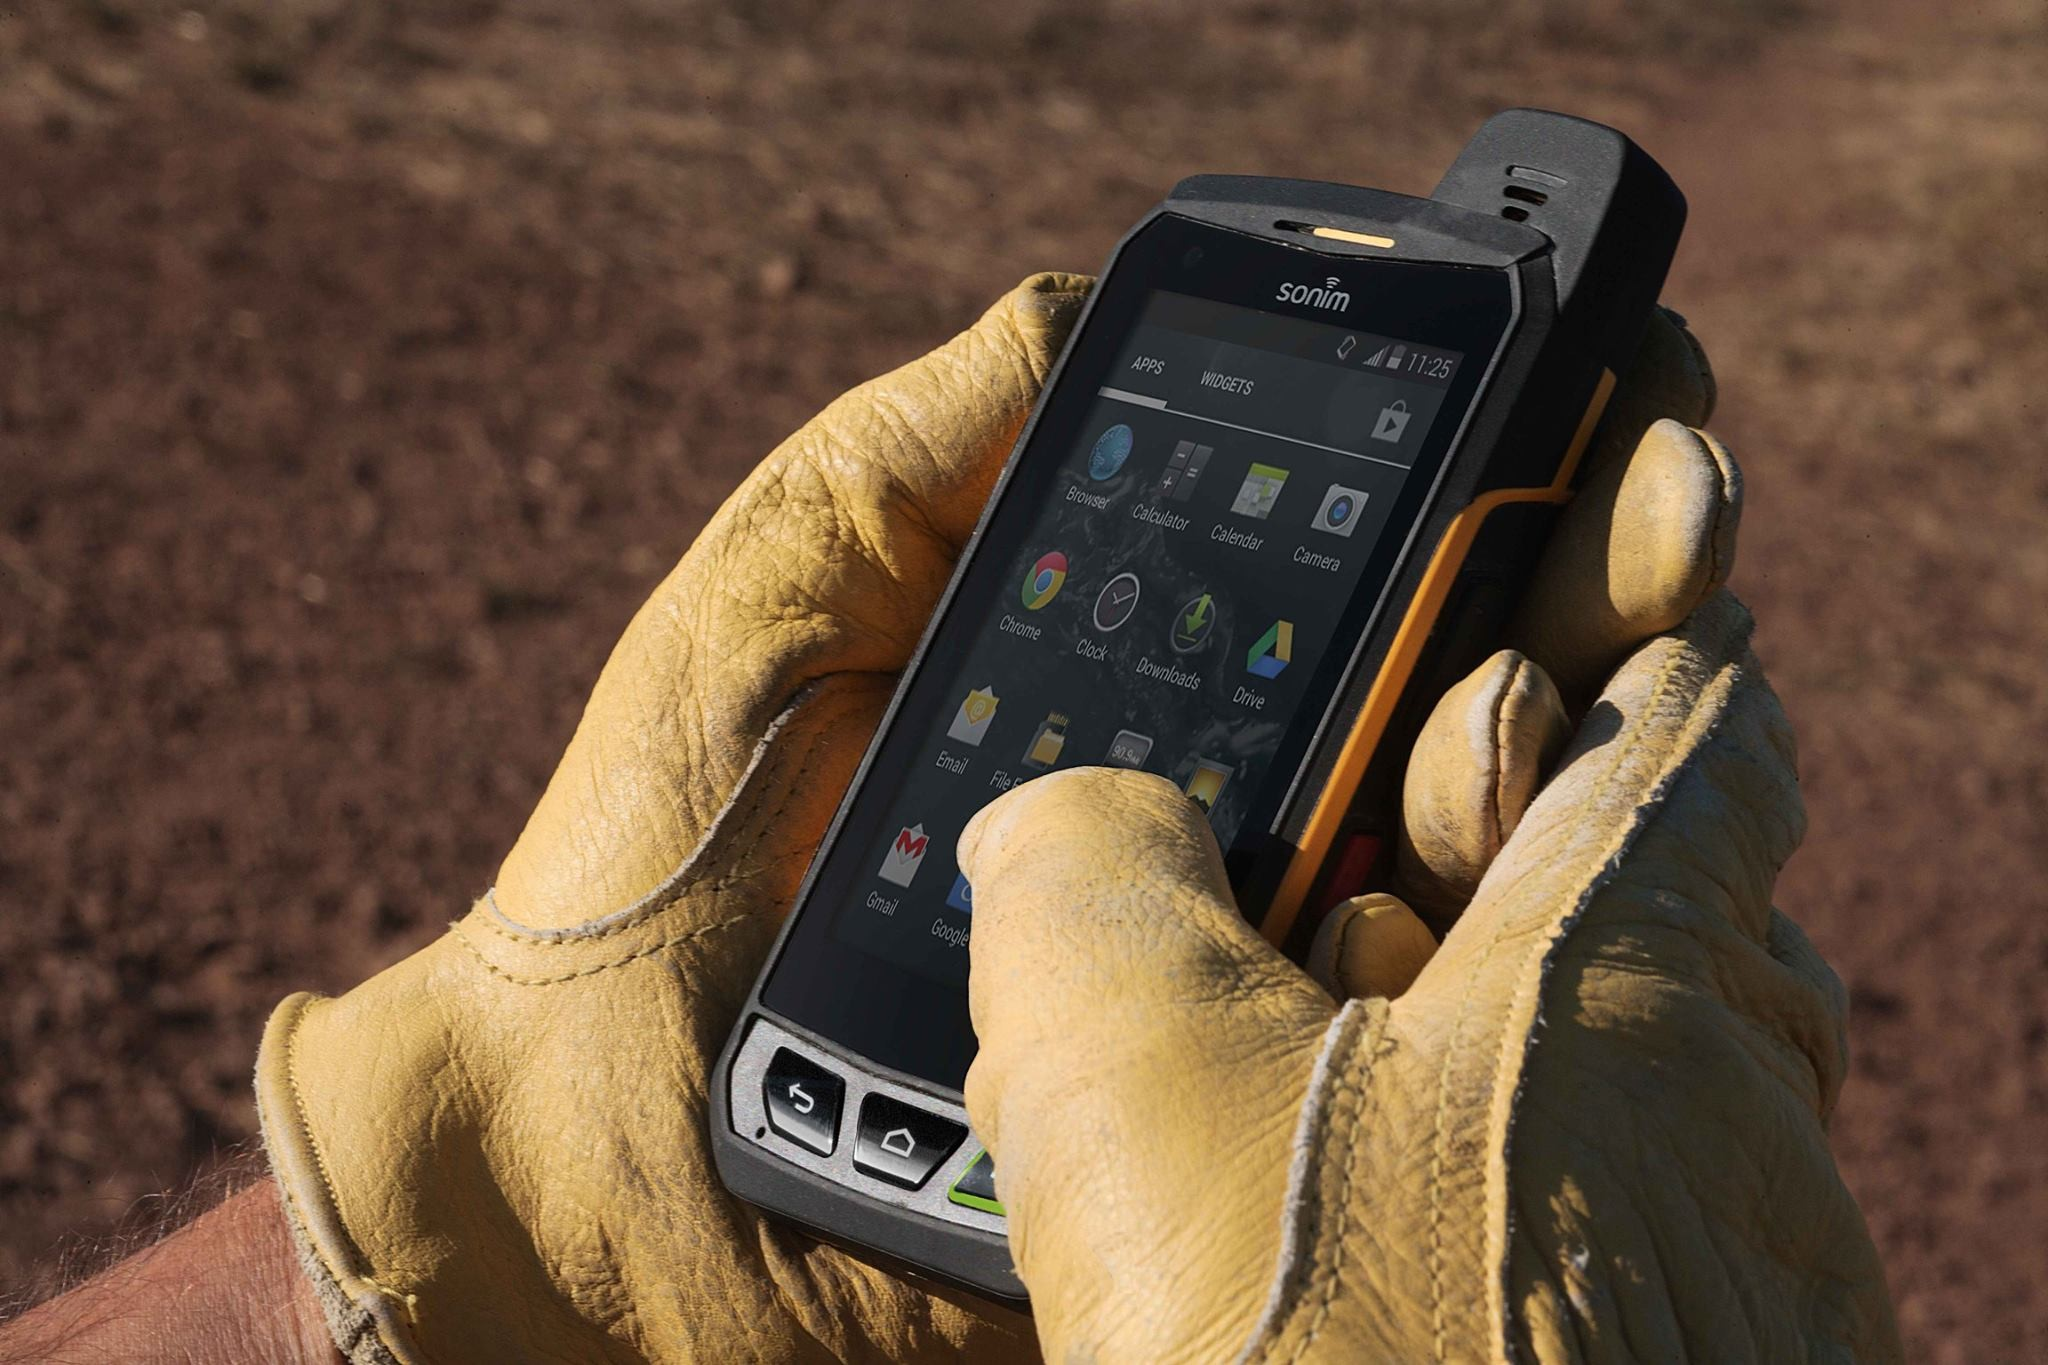 Defining Mobile Device Specifications Based on Work Environment